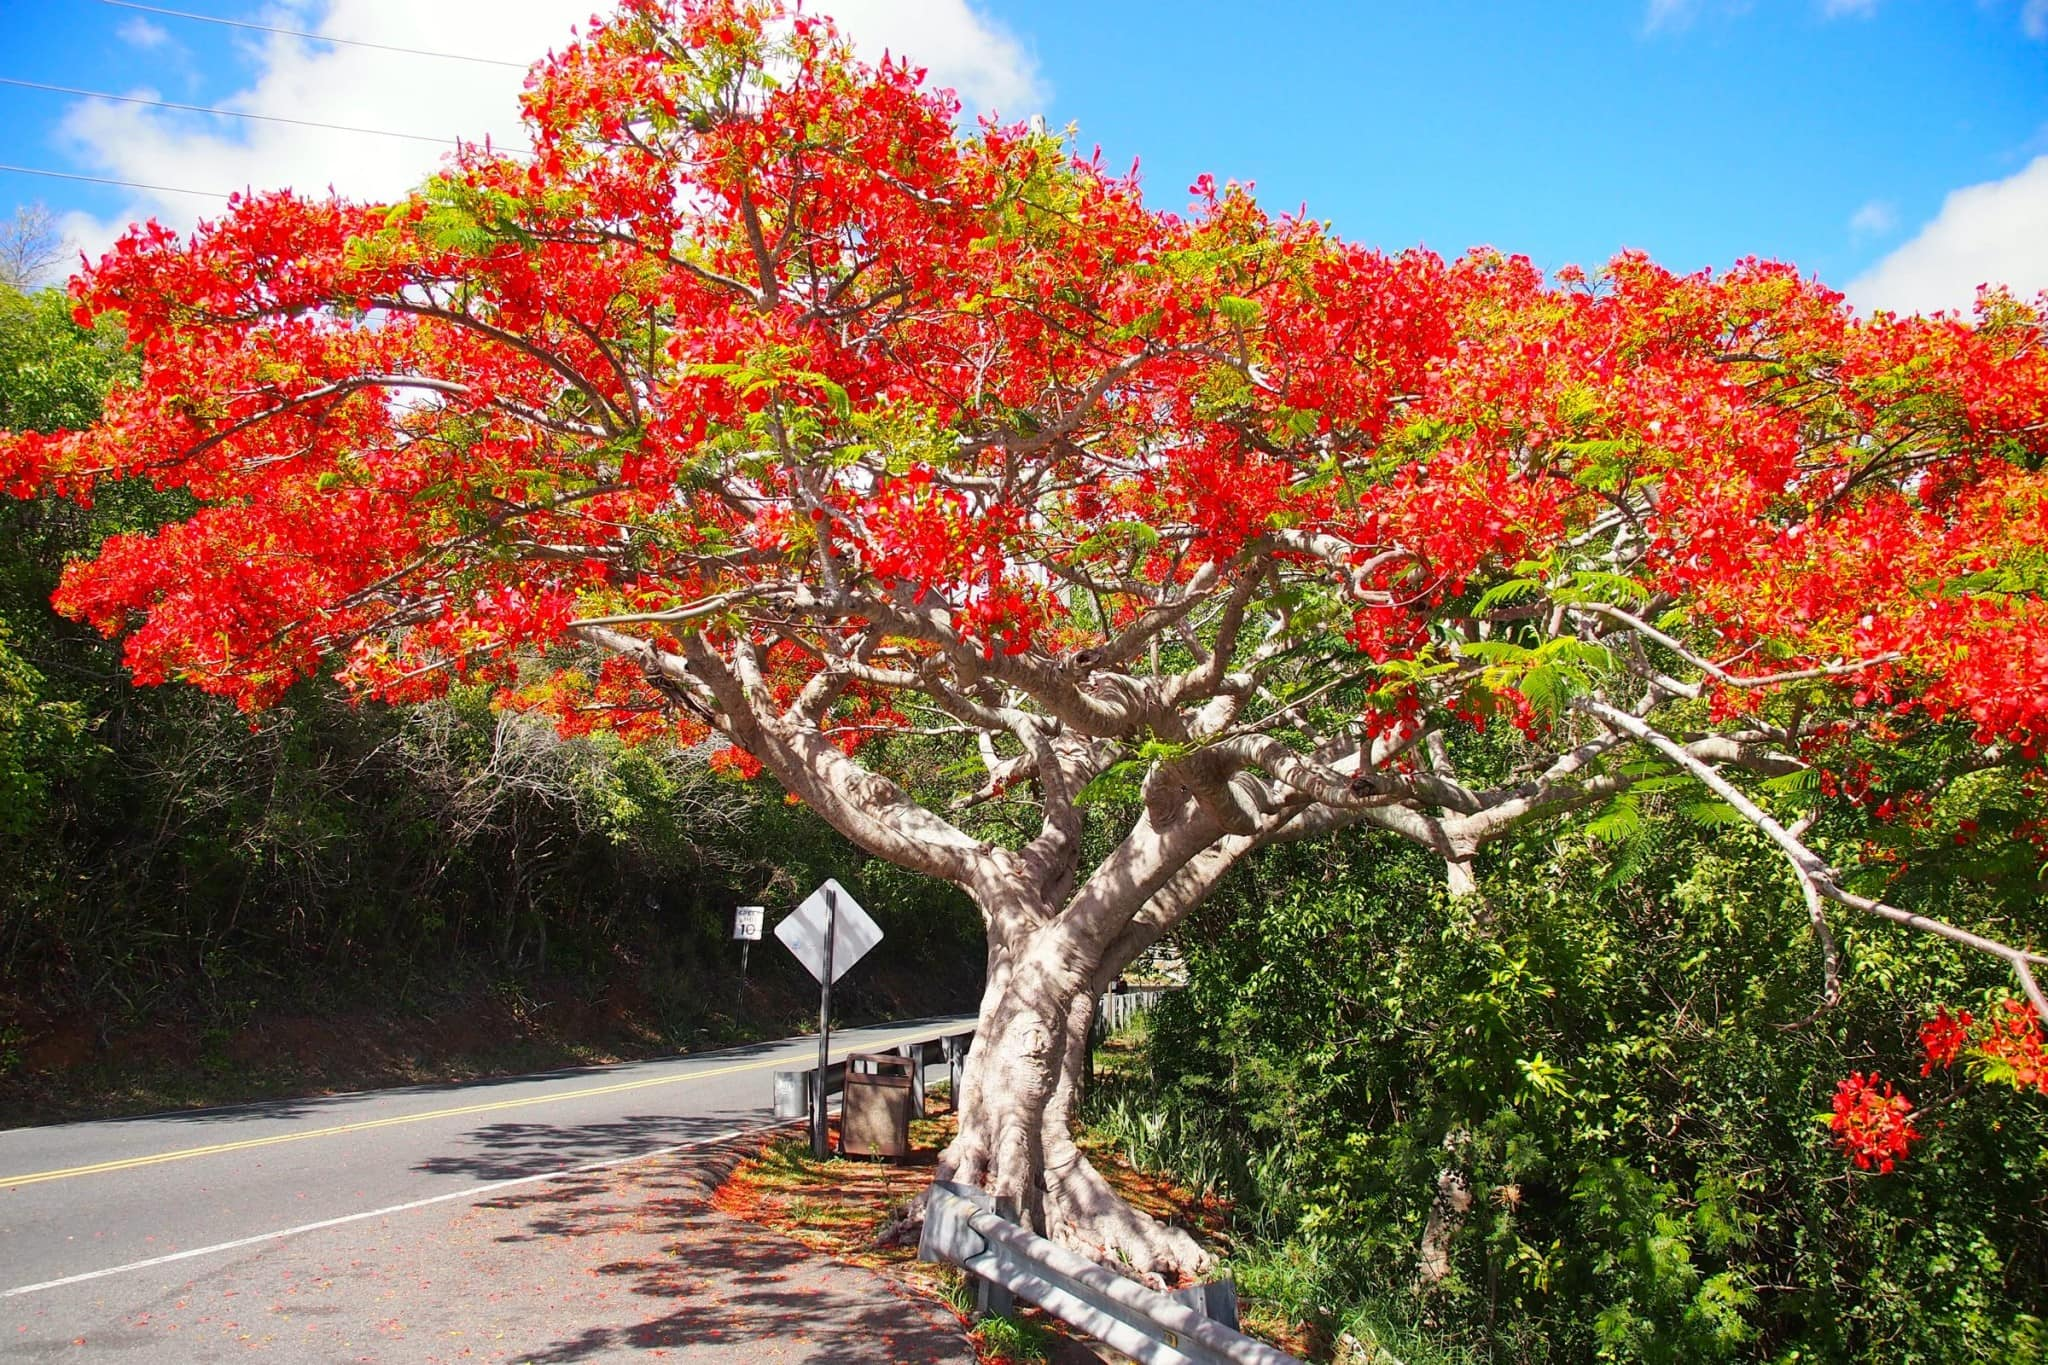 The Flamboyant Tree: So Much More Than a Plain Old Tree